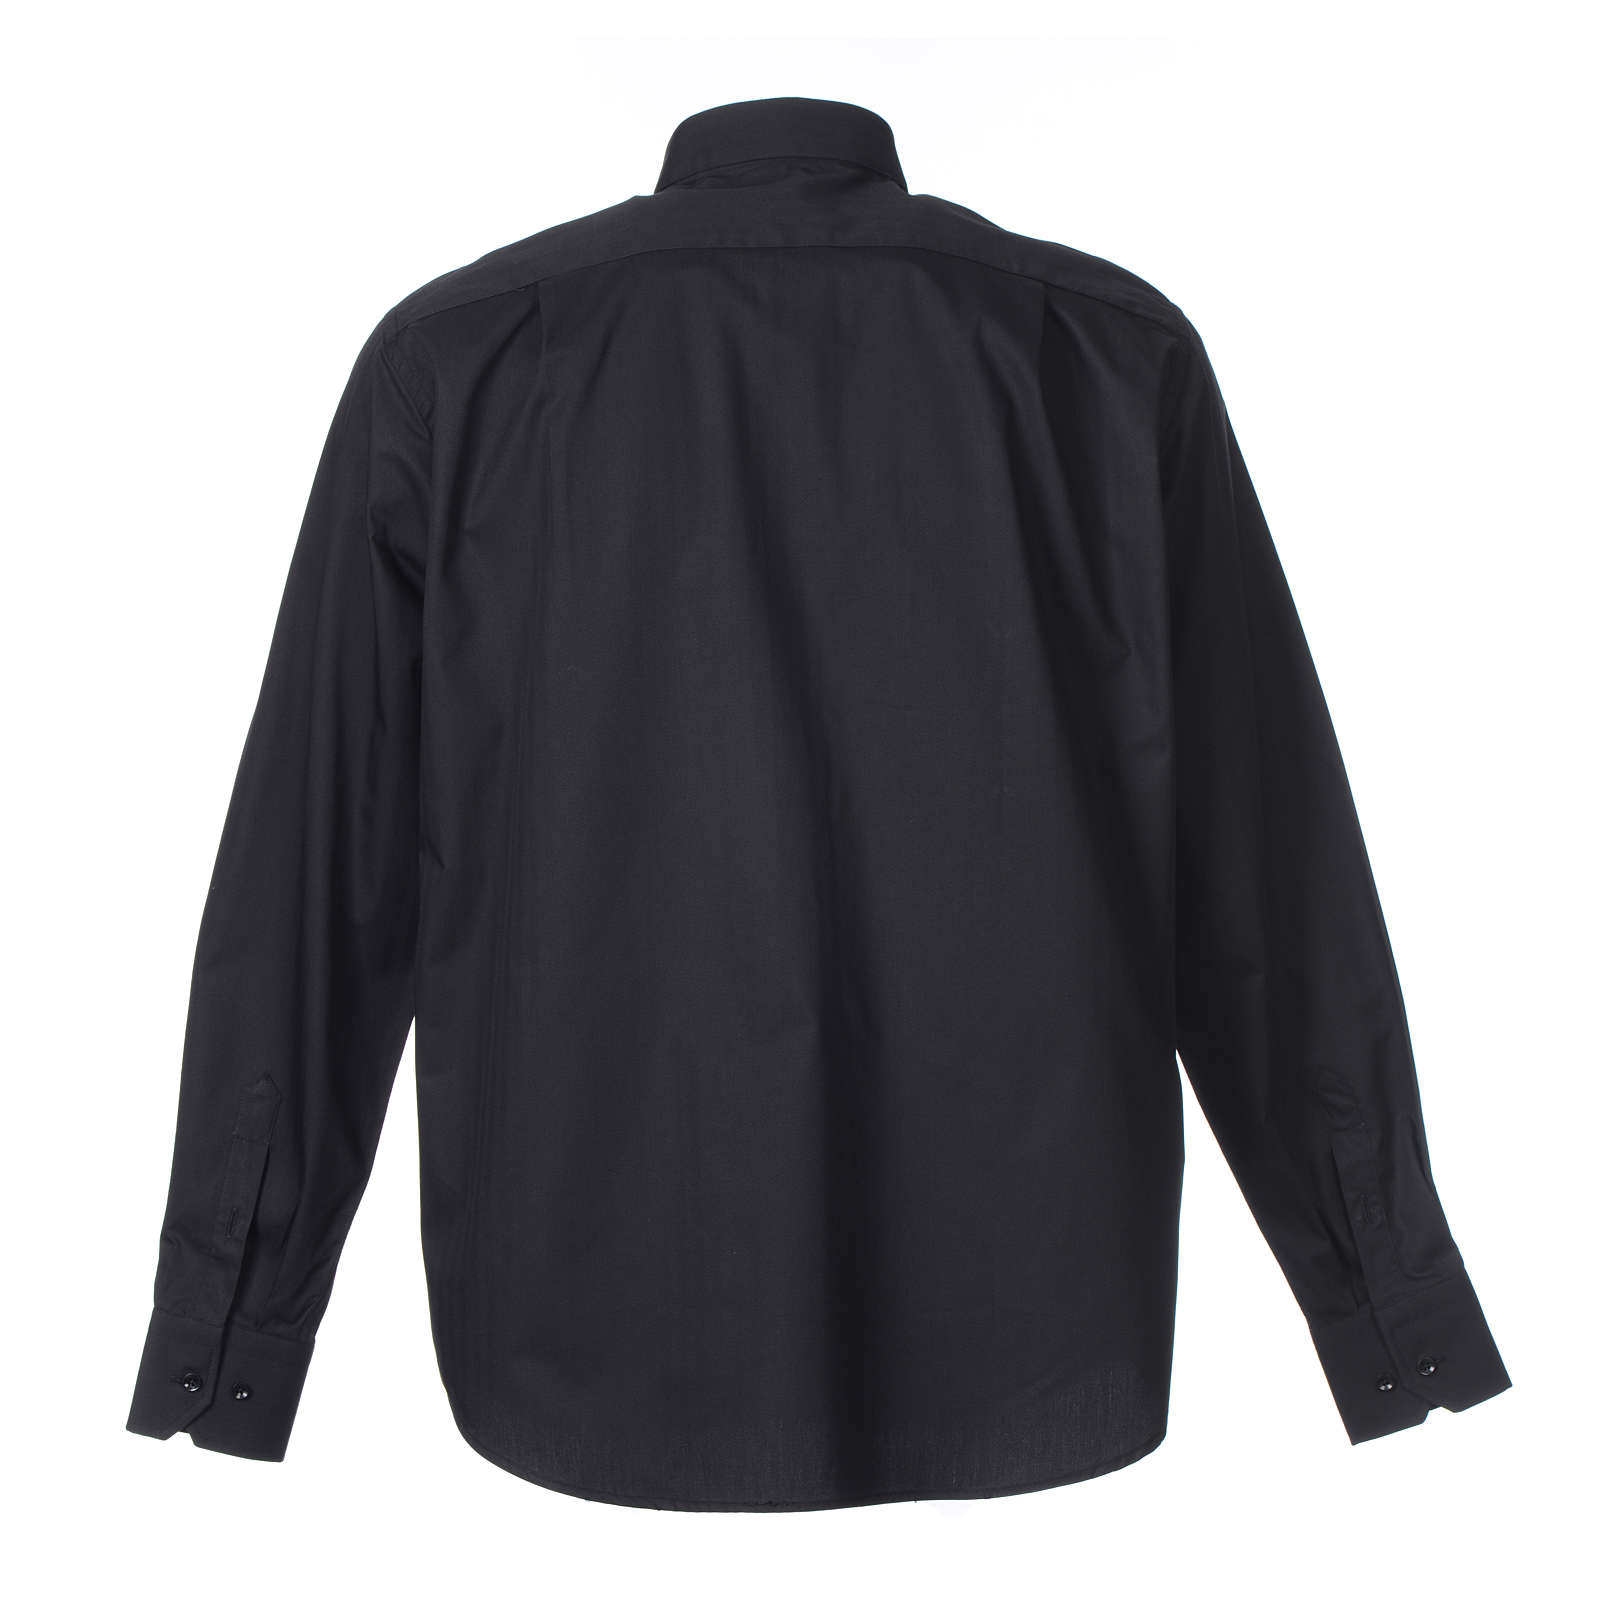 Clergy shirt Long sleeves easy-iron mixed herringbone cotton Black 4